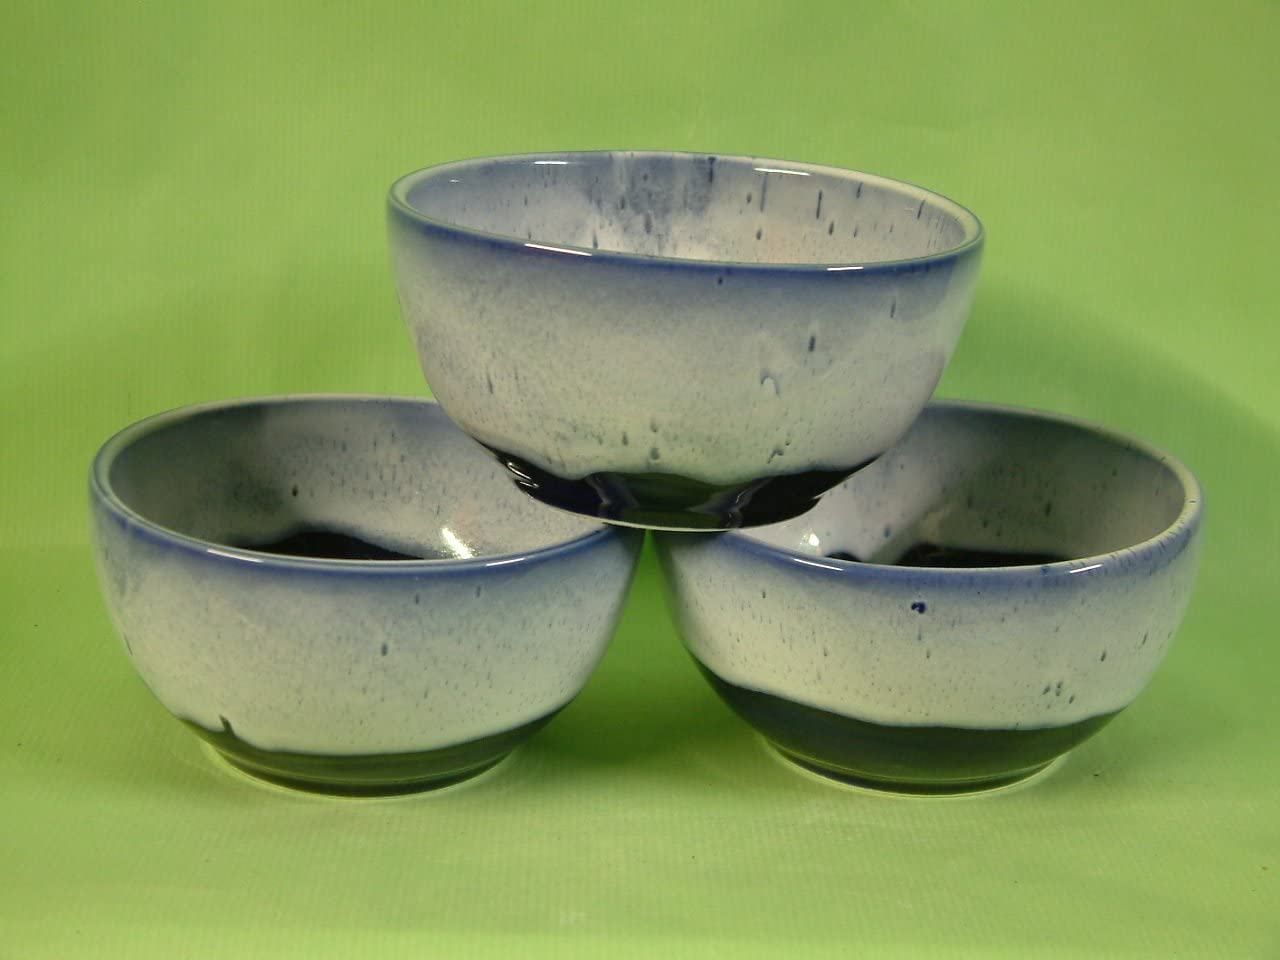 Set of 3 Bowls Glazed in Cobalt Blue with White Rim Ideal for Cereal Soup Fruit ext